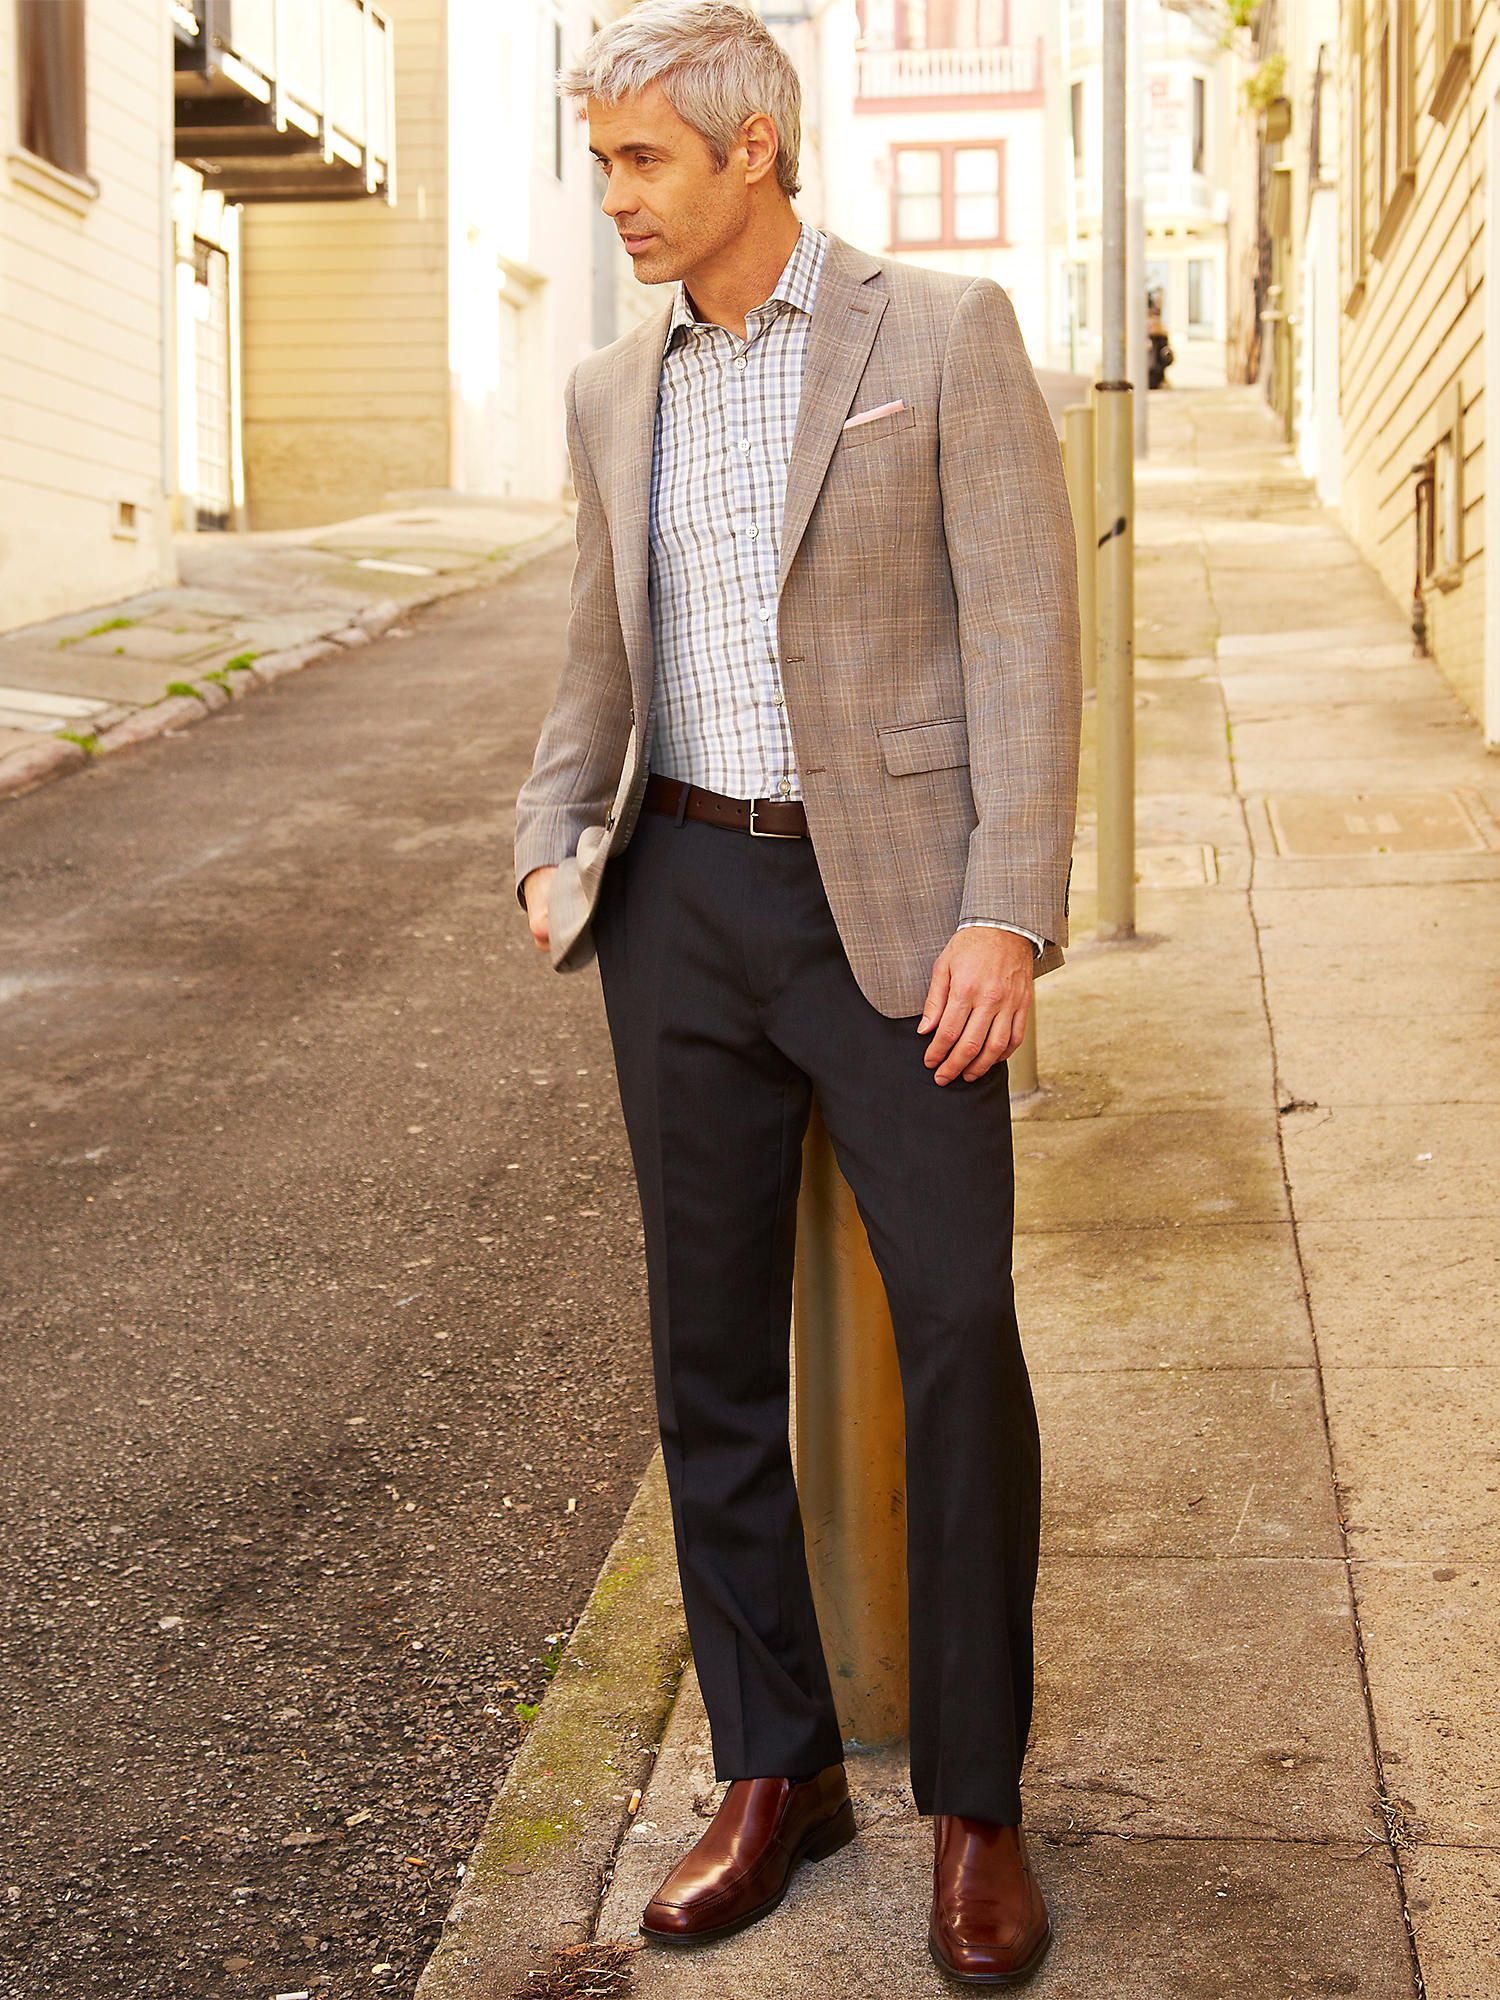 professional interview attire for men interview dress attire this outfit is great for a future teacher the guy is wearing slacks a long sleeve and a jacket plus really nice brown dress shoes very professional yet